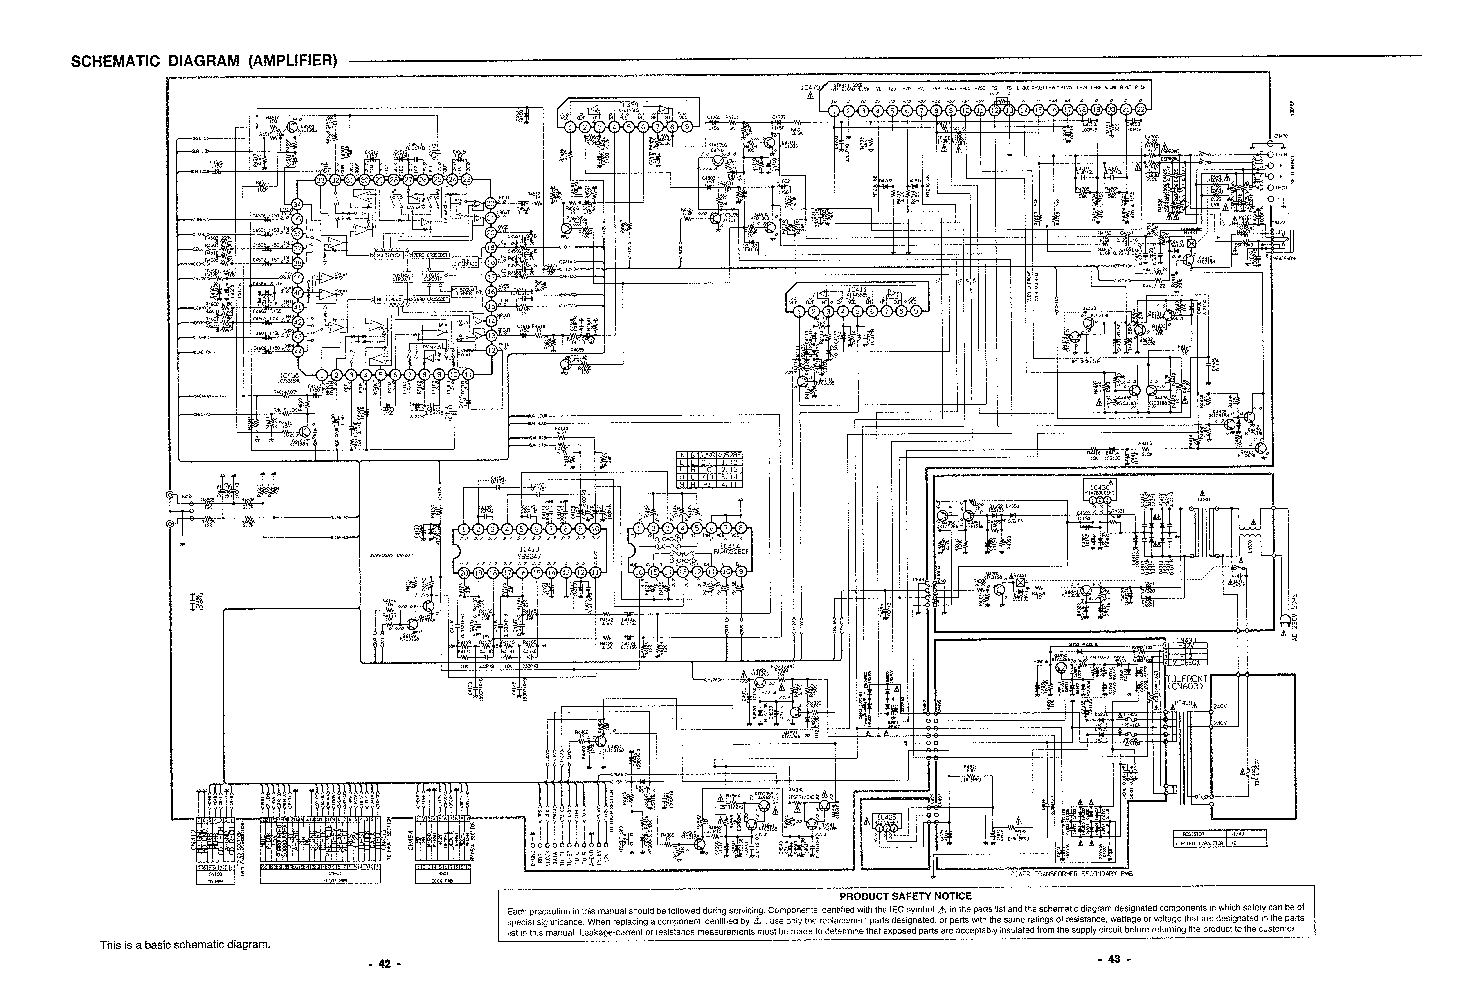 Sanyo Dc C70 Amp Sch Service Manual Download Schematics